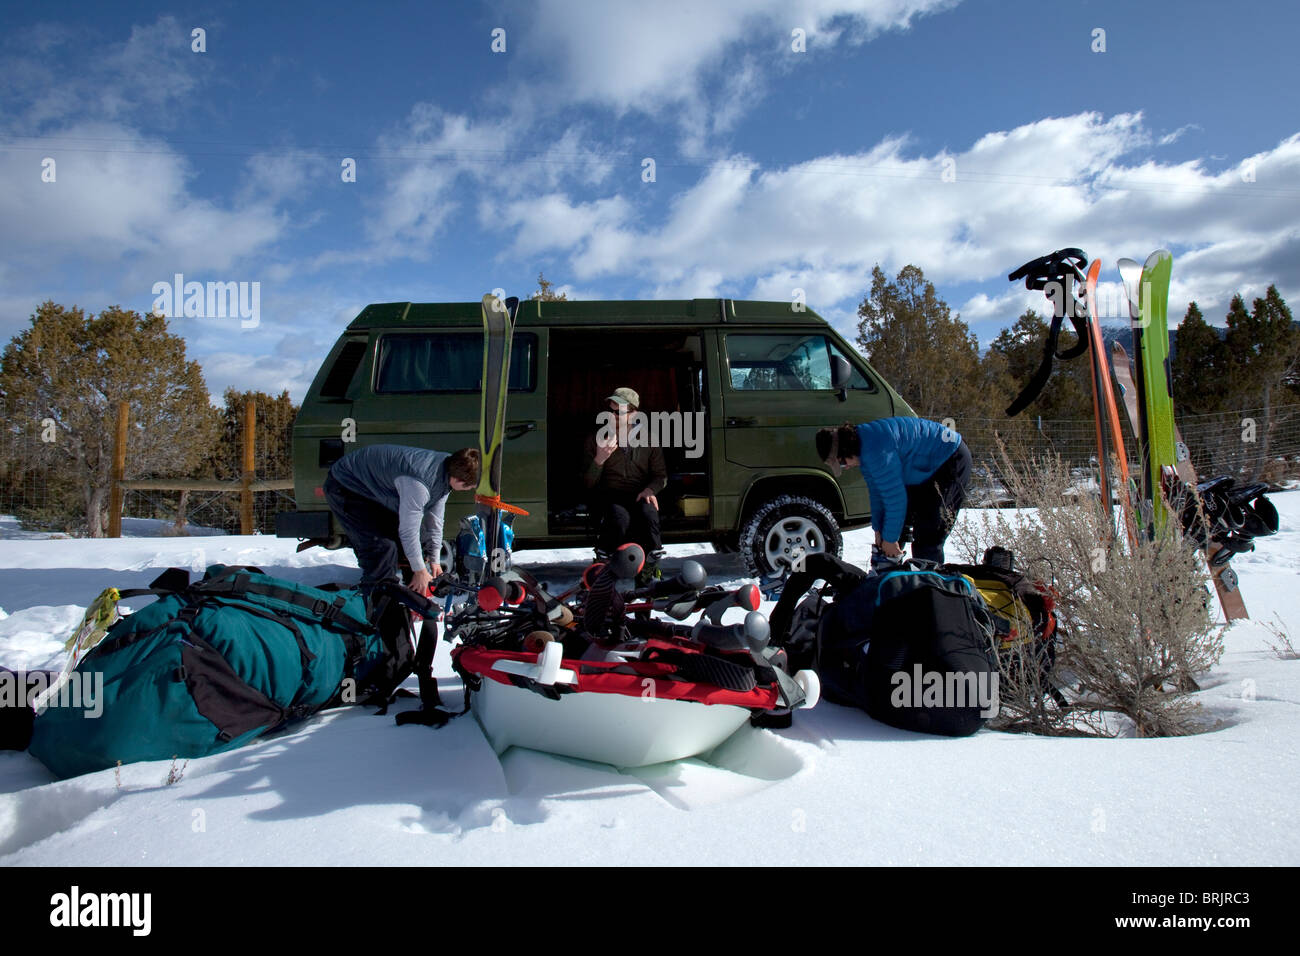 Three men getting ready for a ski trip next to a classic van parked in the snow. - Stock Image